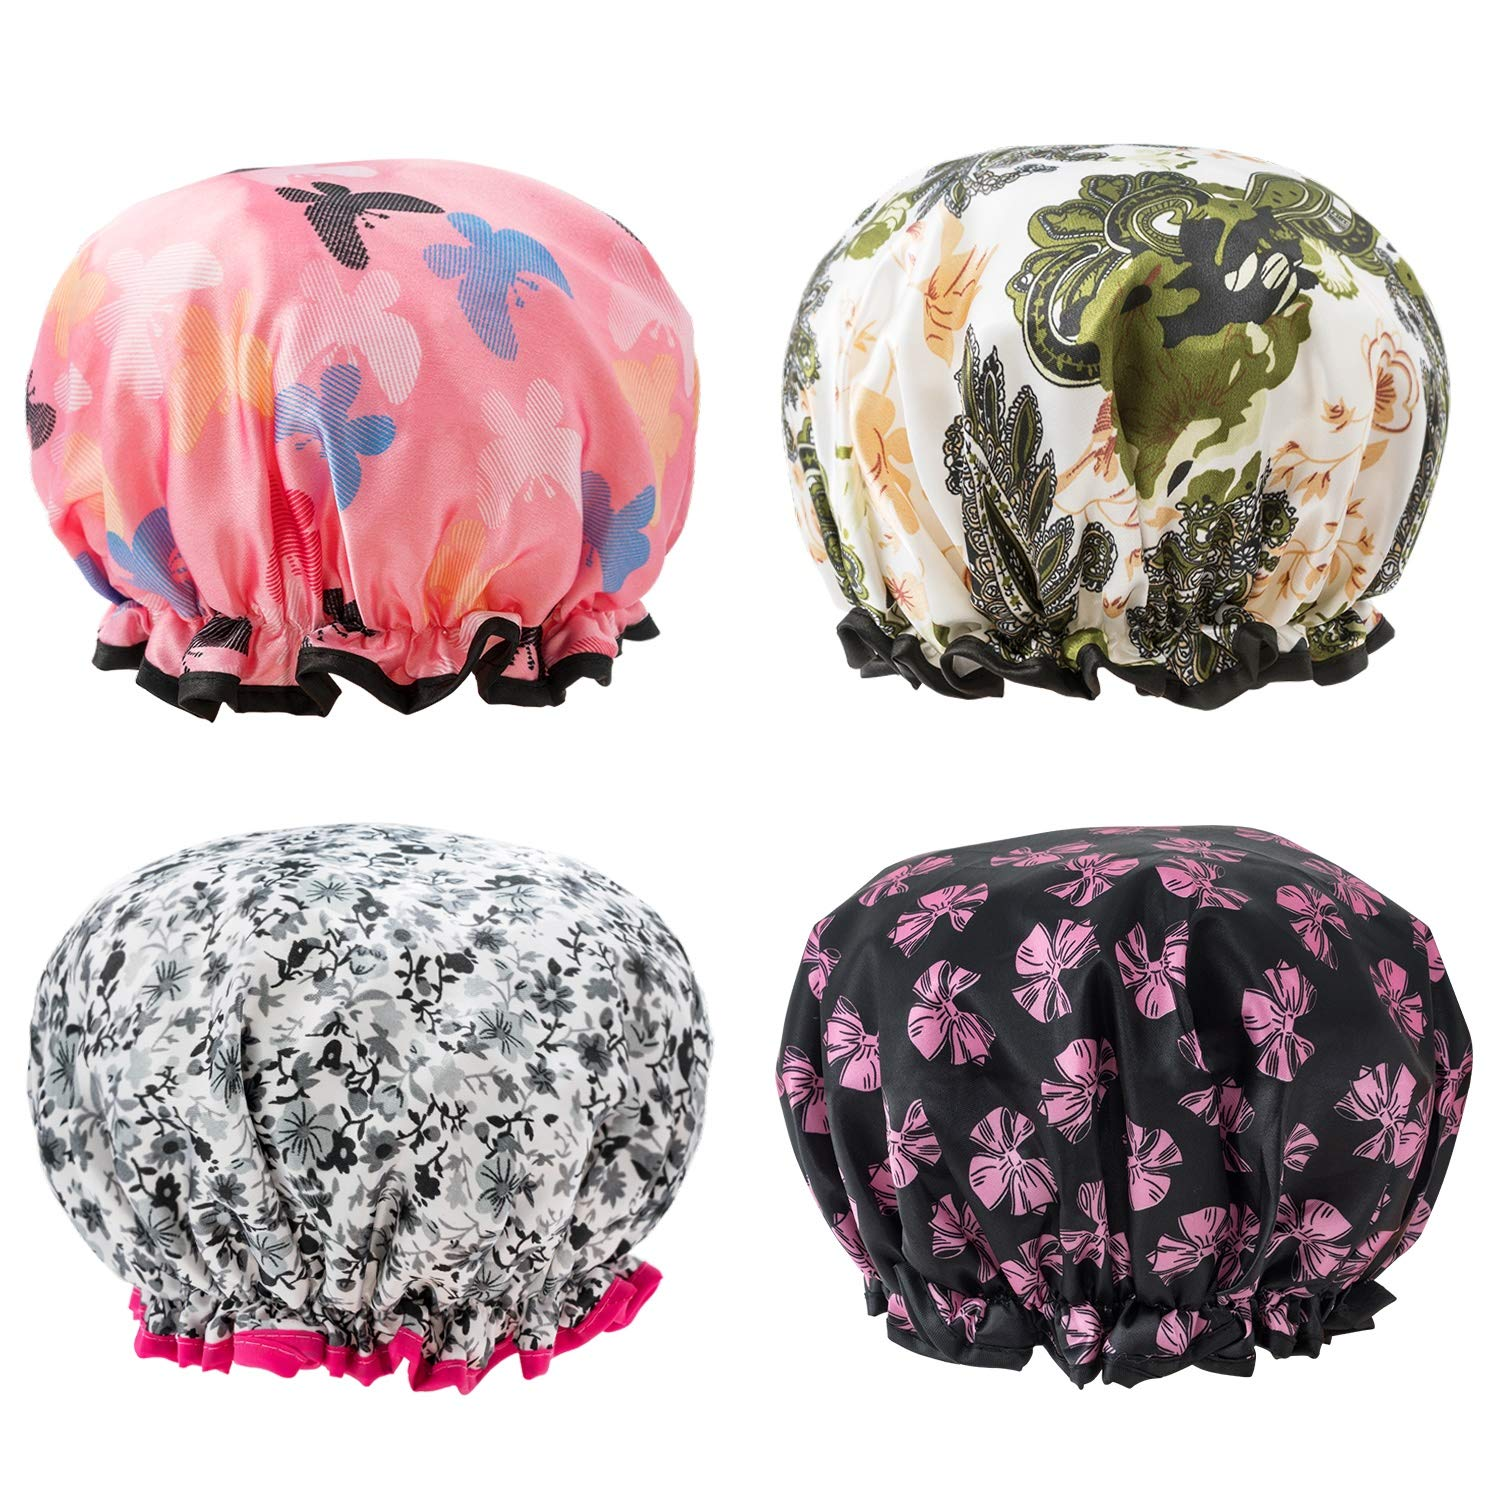 Shower Caps 4 Pack Bath Caps Perfect for Women most Hair Lengths and Thicknesses - Waterproof - Double Layer, Upgraded Version (Style 2)